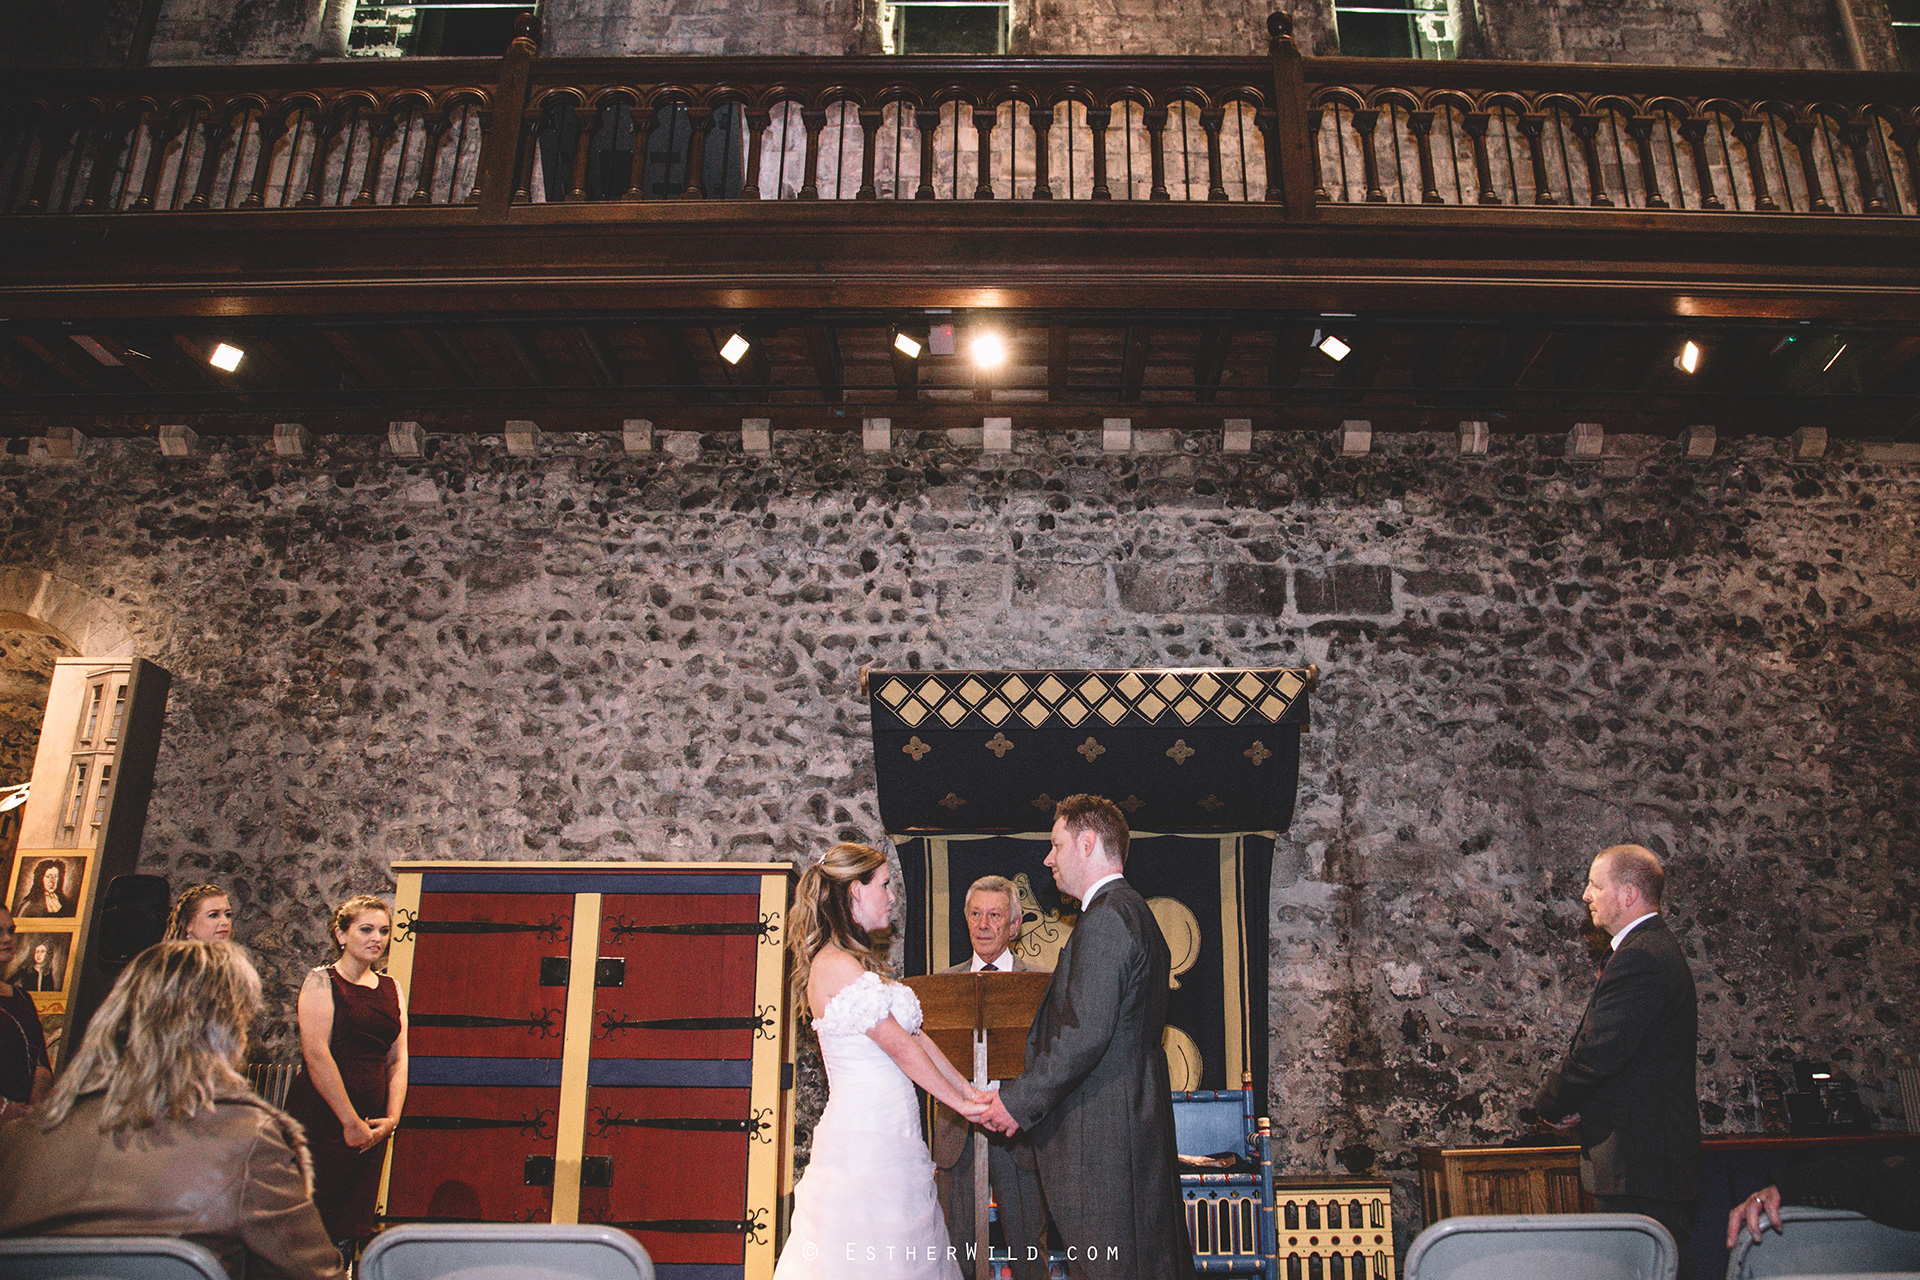 norwich_castle_wedding_esther_wild_photographer_norfolk (29).jpg